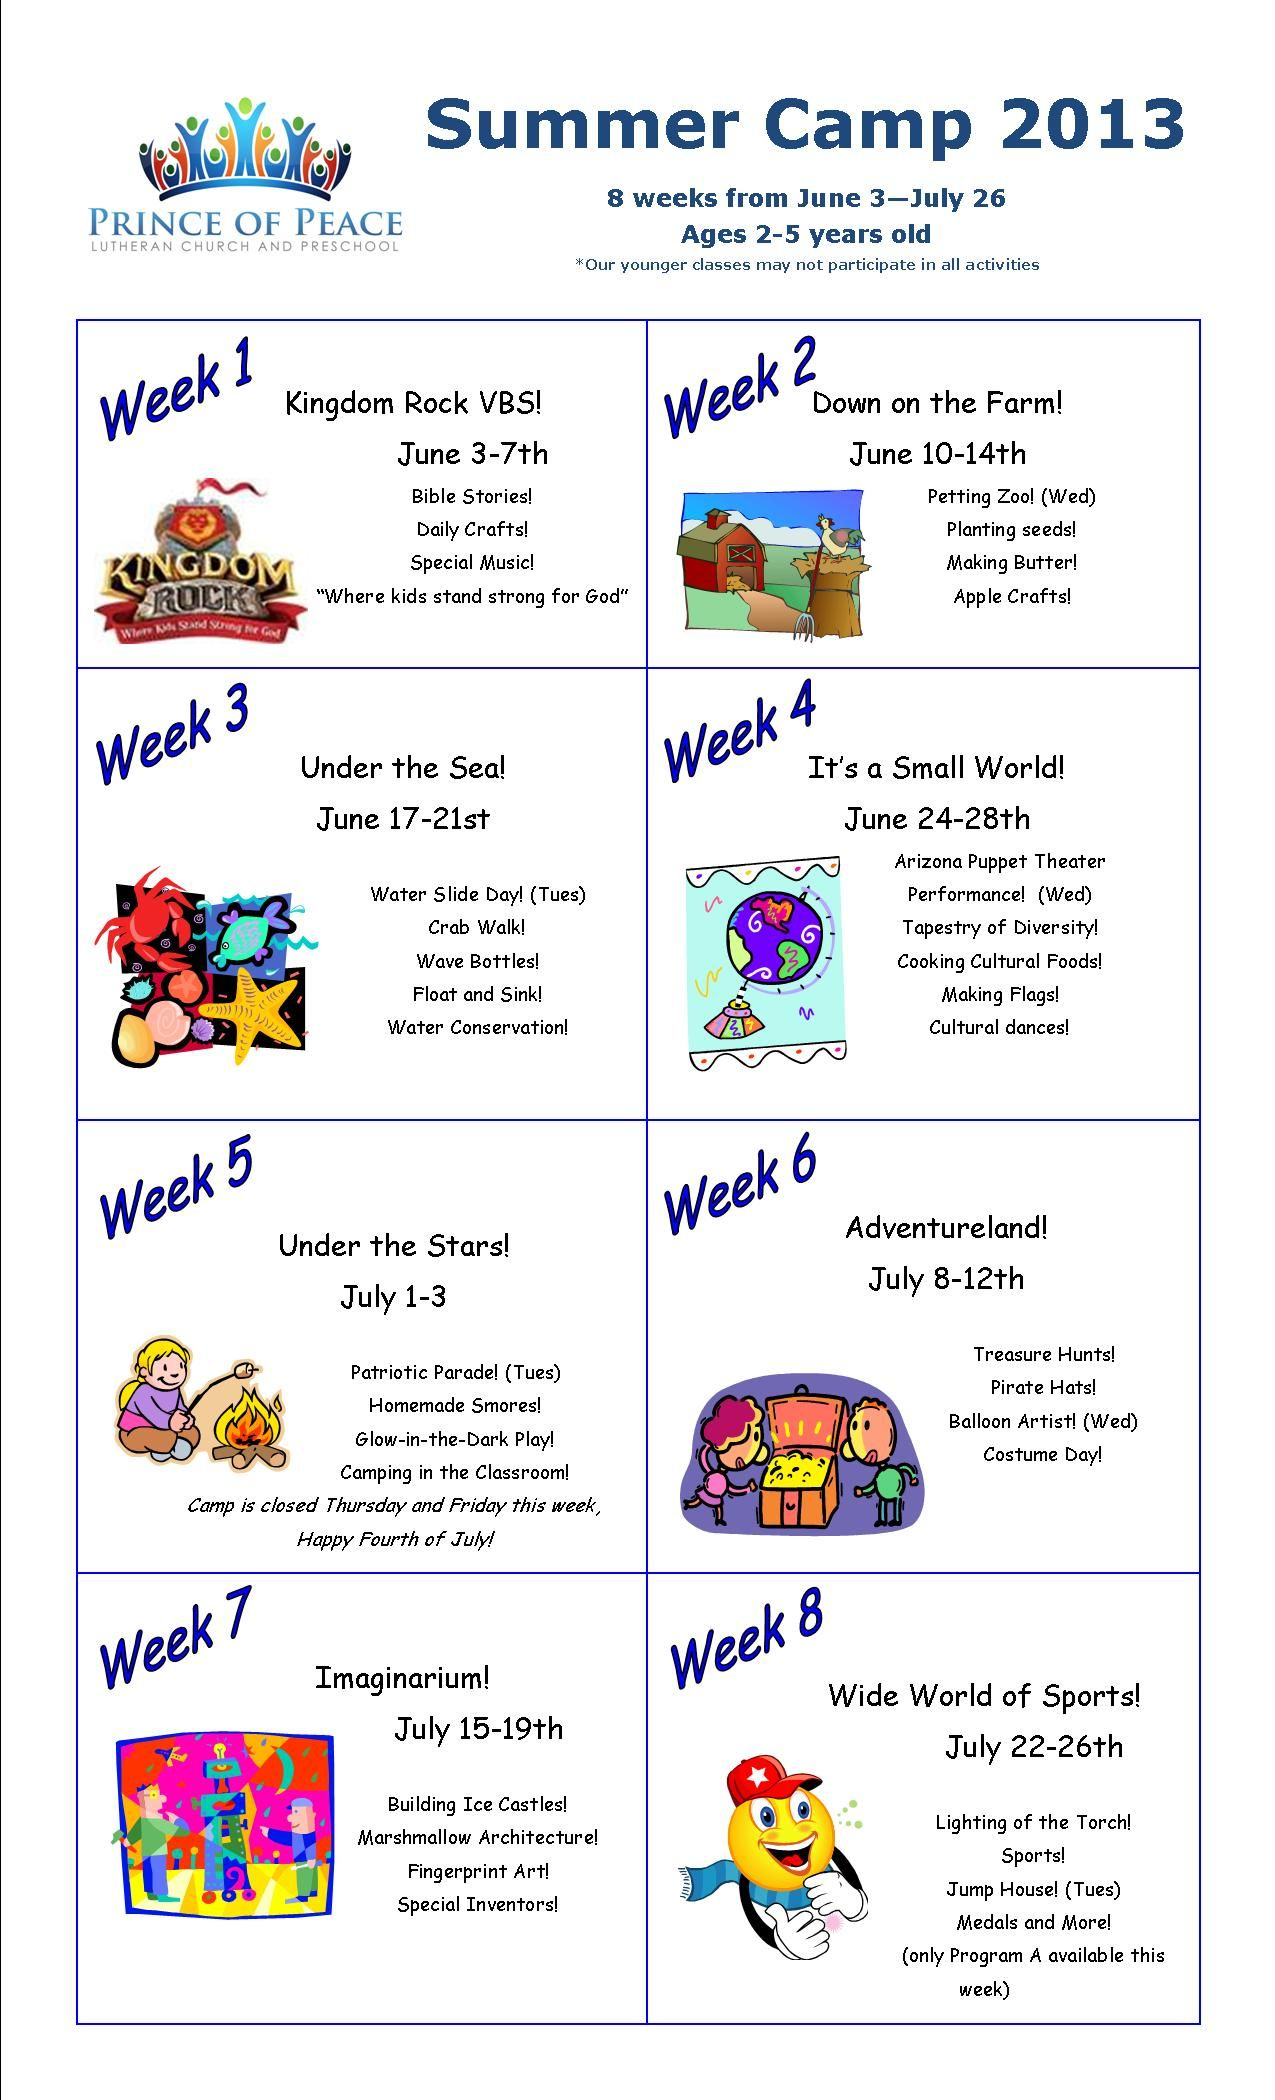 10 Most Popular Ideas For Summer Camp Themes summer camp calendar 2013 i love this idea to devote a week to 5